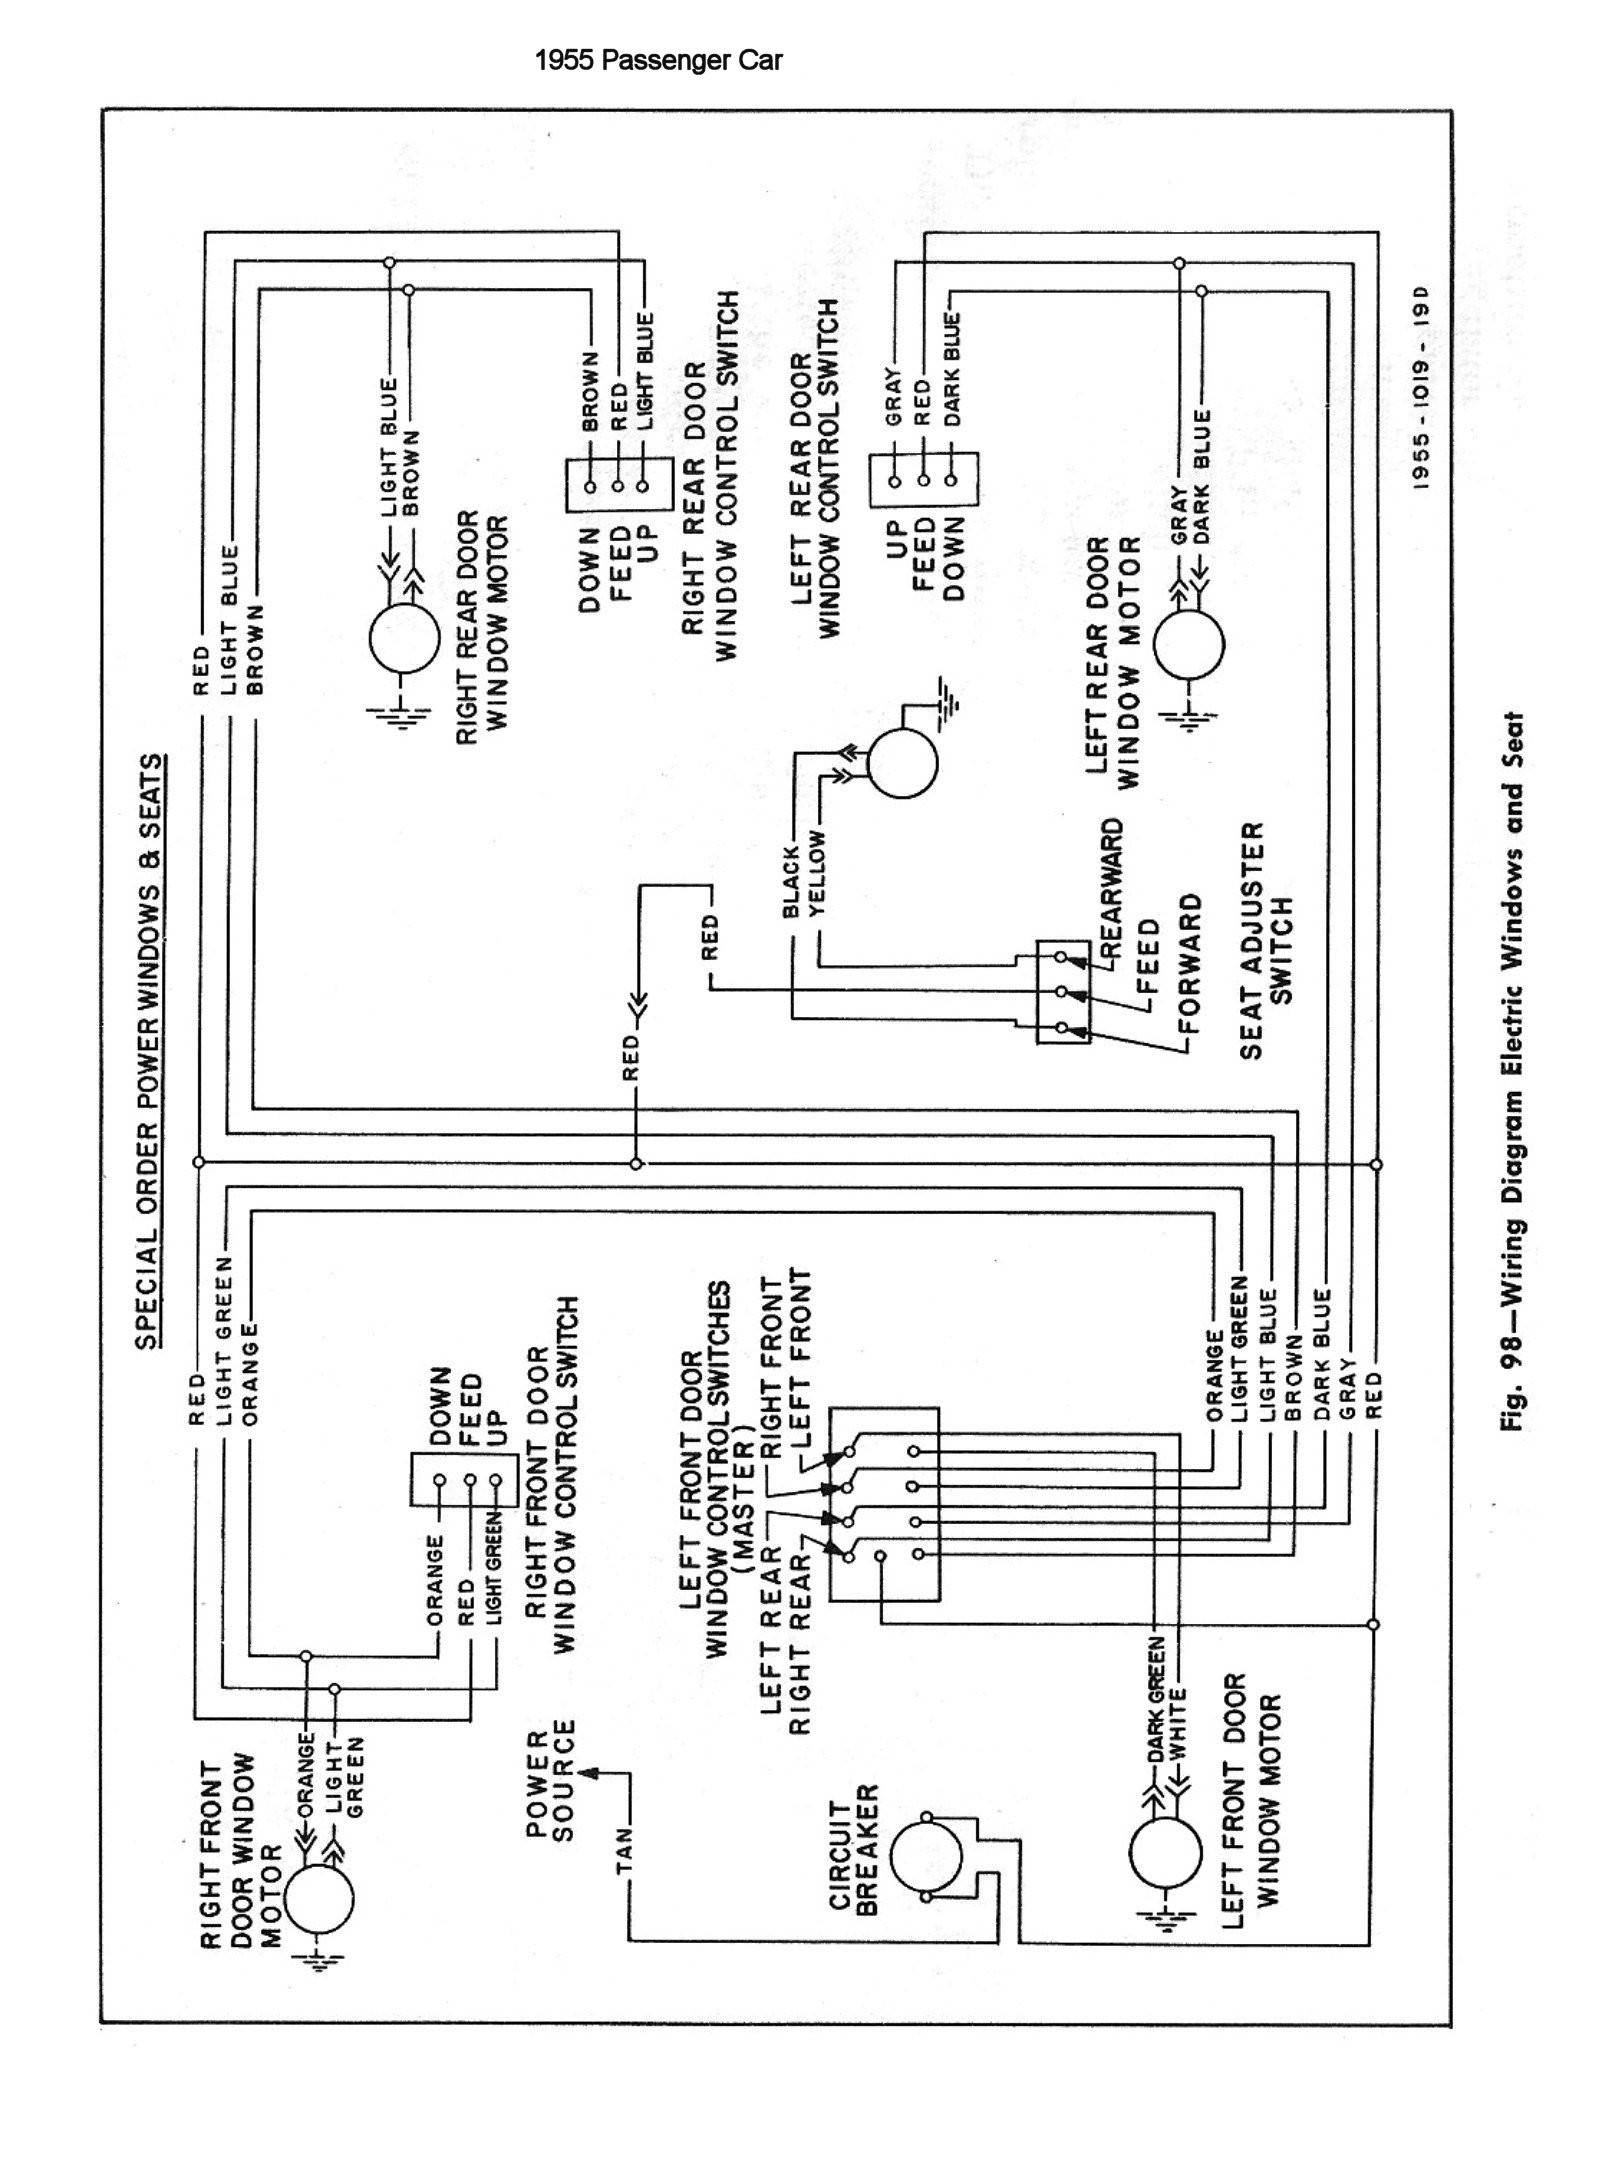 wiring diagram for a 1969 chevrolet c10